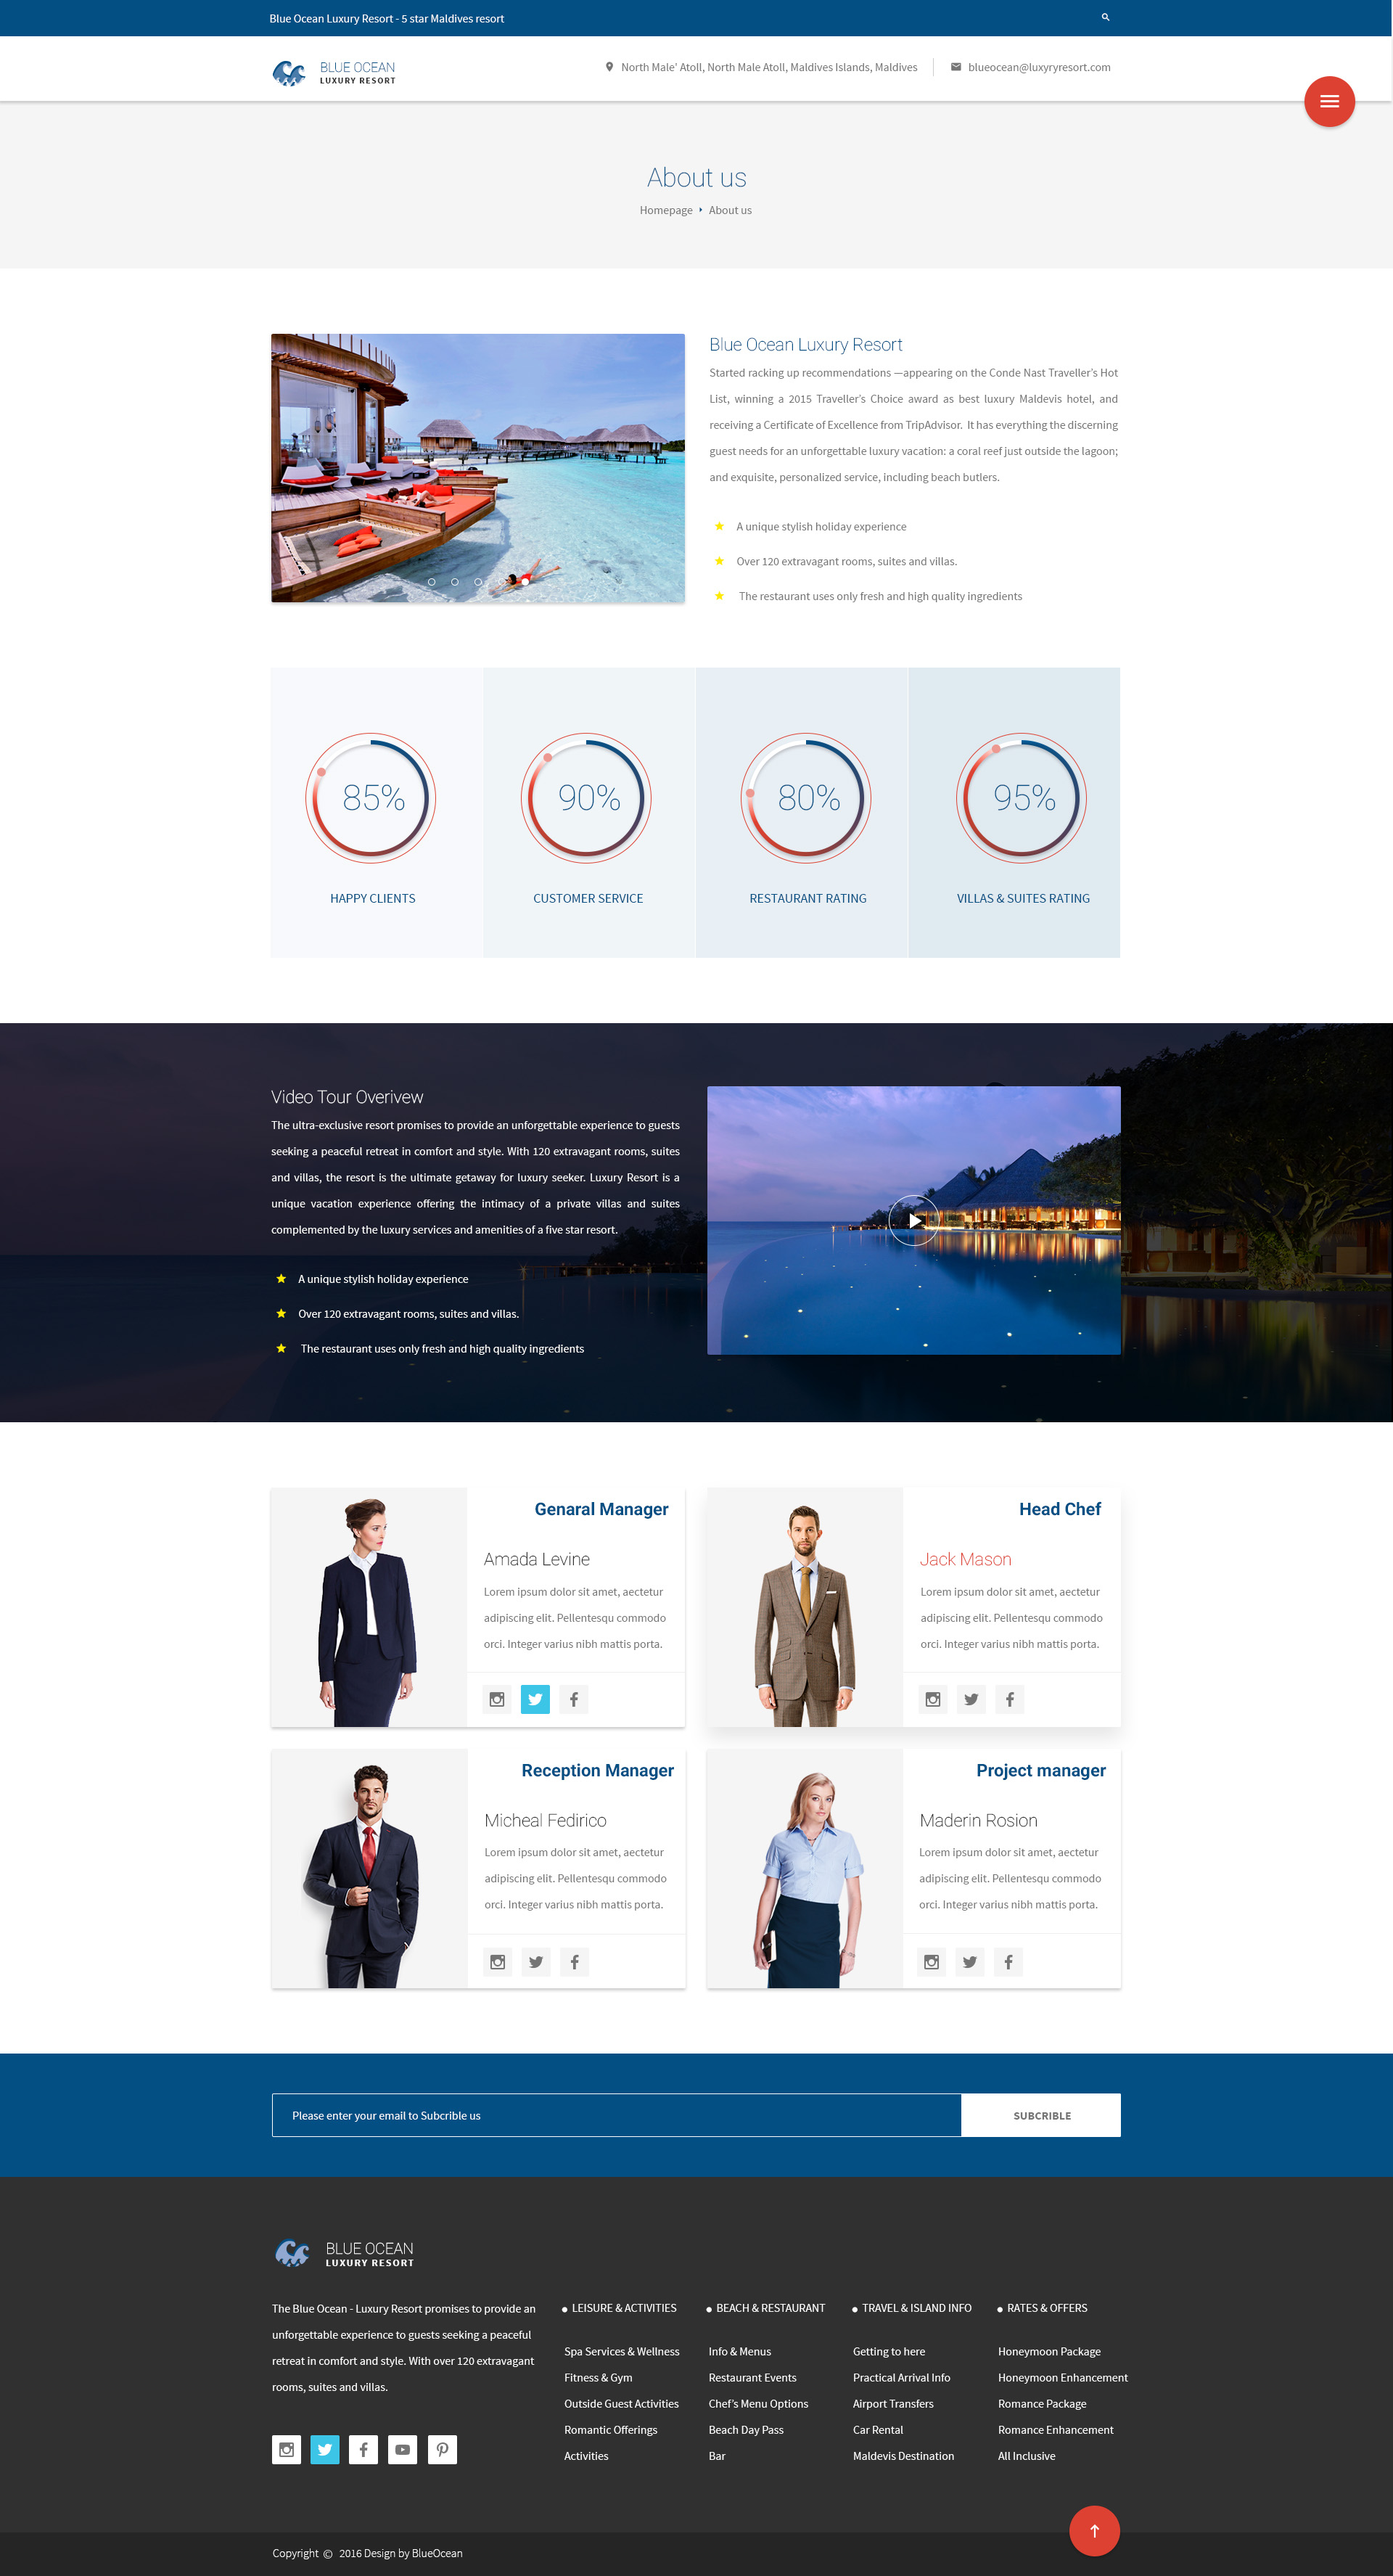 Blue ocean resort hotel html template by pixartthemes blue ocean resort hotel html template pronofoot35fo Choice Image